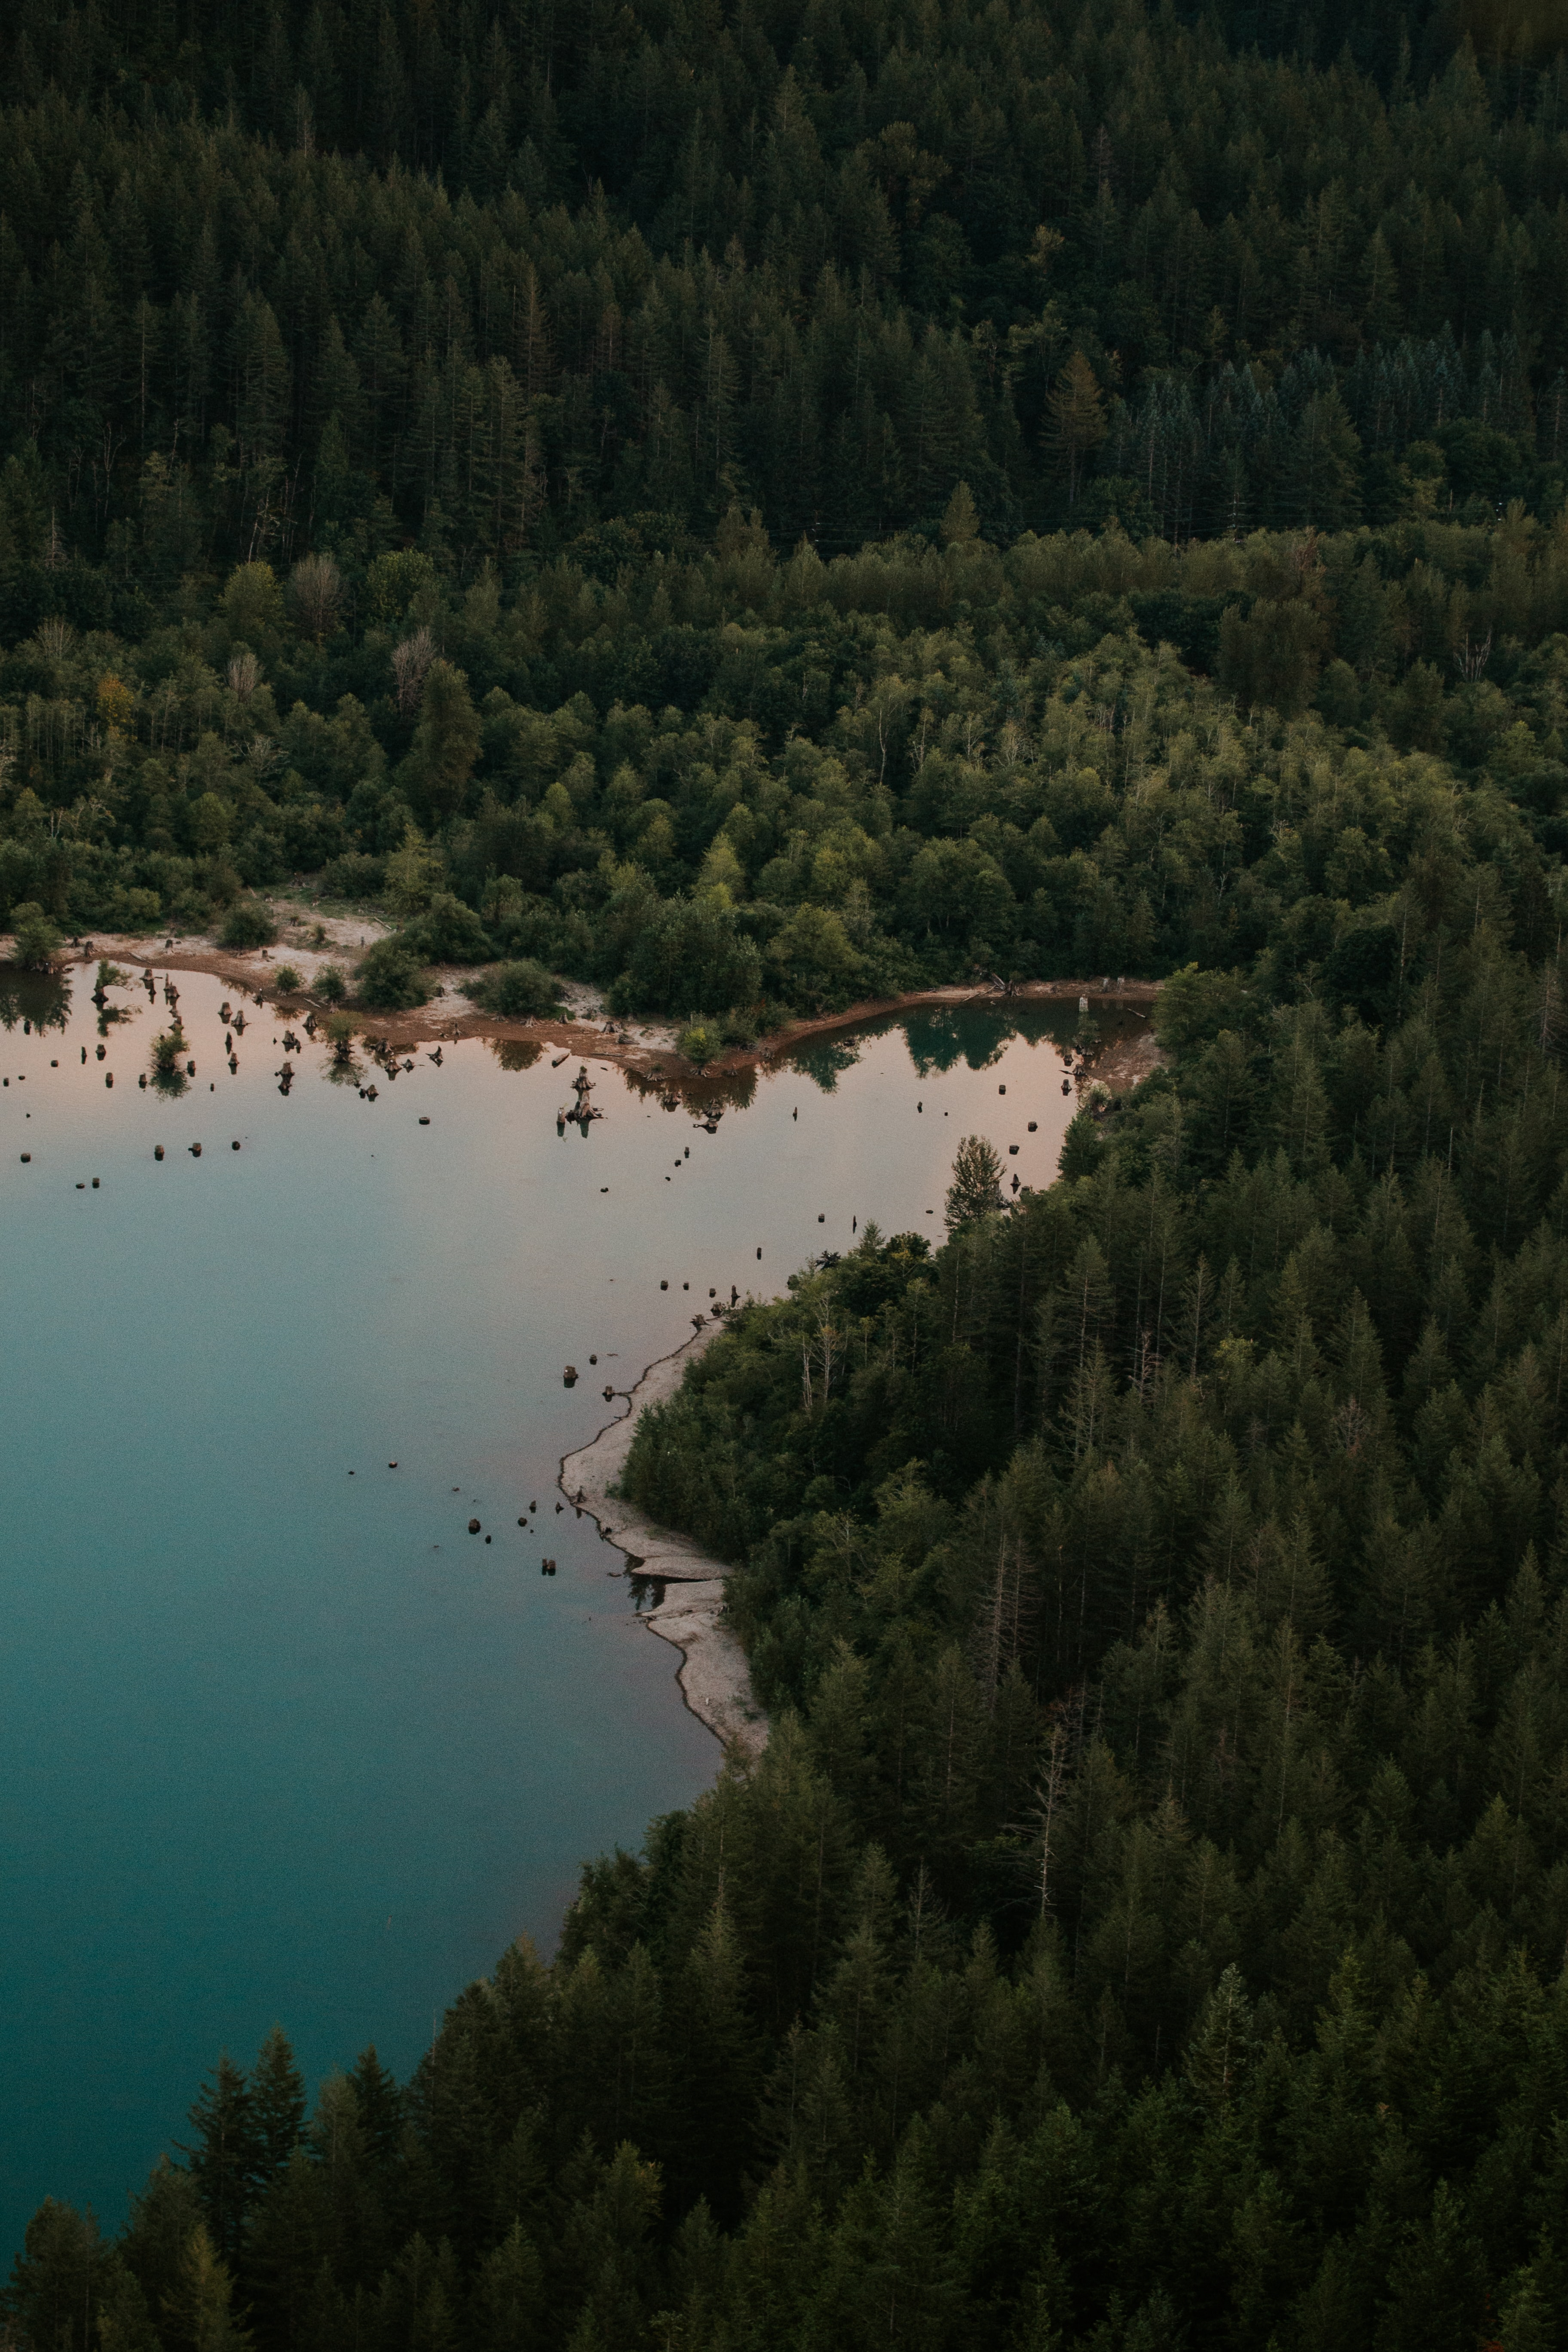 aerial view of green forest near body of water